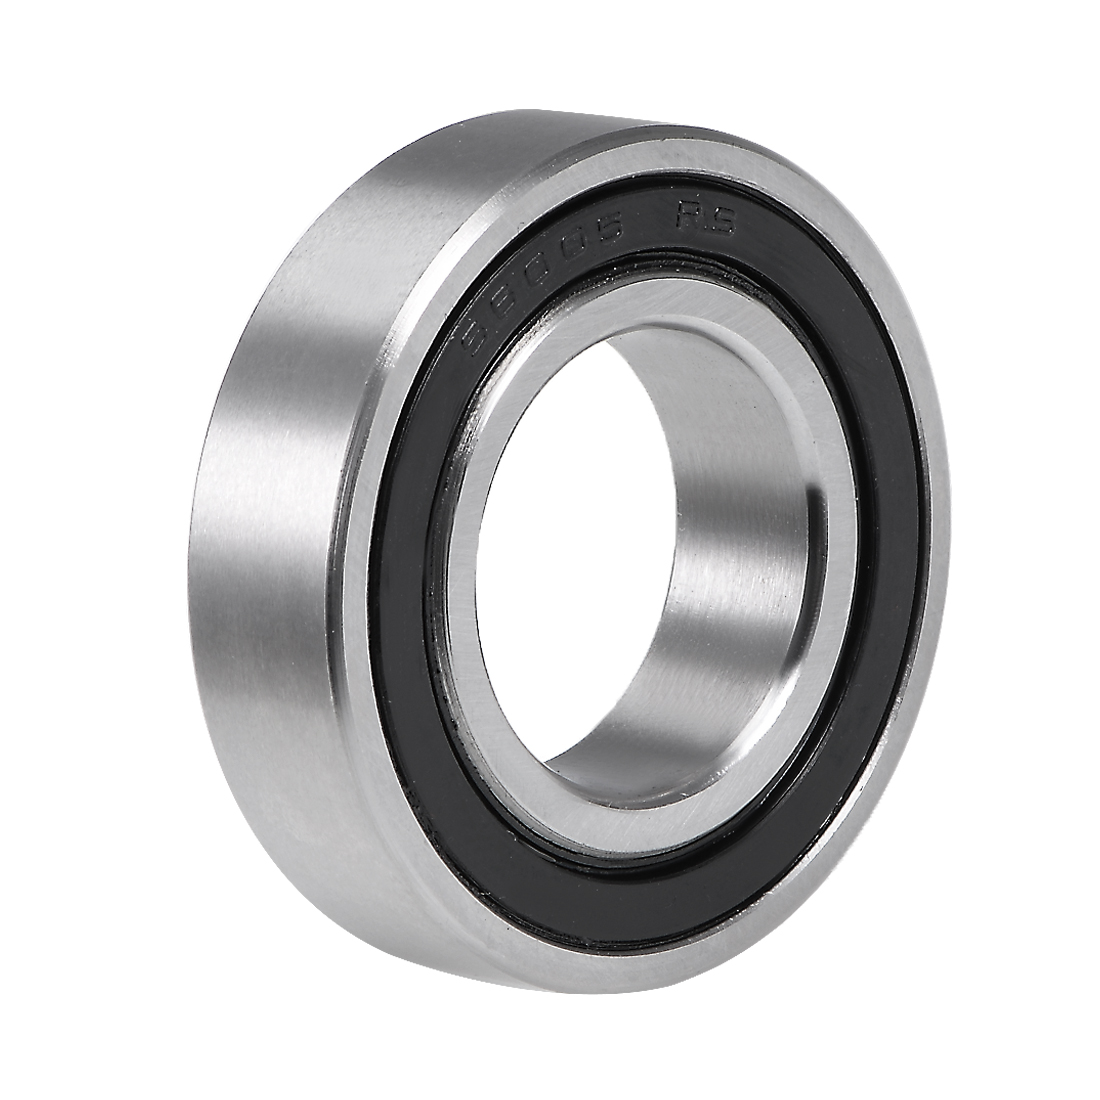 S6005-2RS Stainless Steel Ball Bearing 25x47x12mm Double Sealed 6005RS Bearings